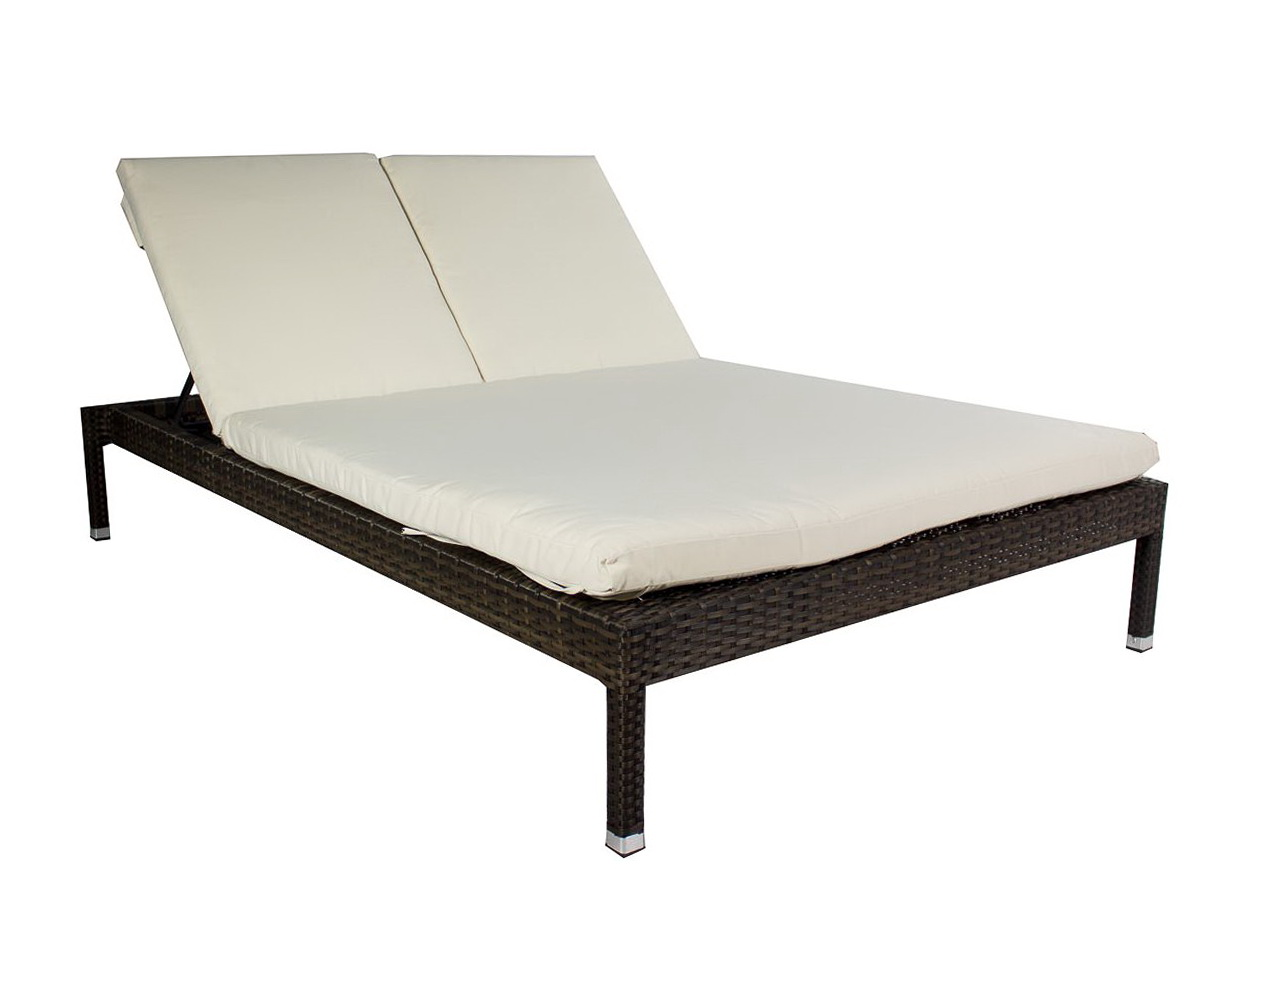 double chaise lounge outdoor teak wood furniture 24 ideas for the terrace home dezign costco. Black Bedroom Furniture Sets. Home Design Ideas